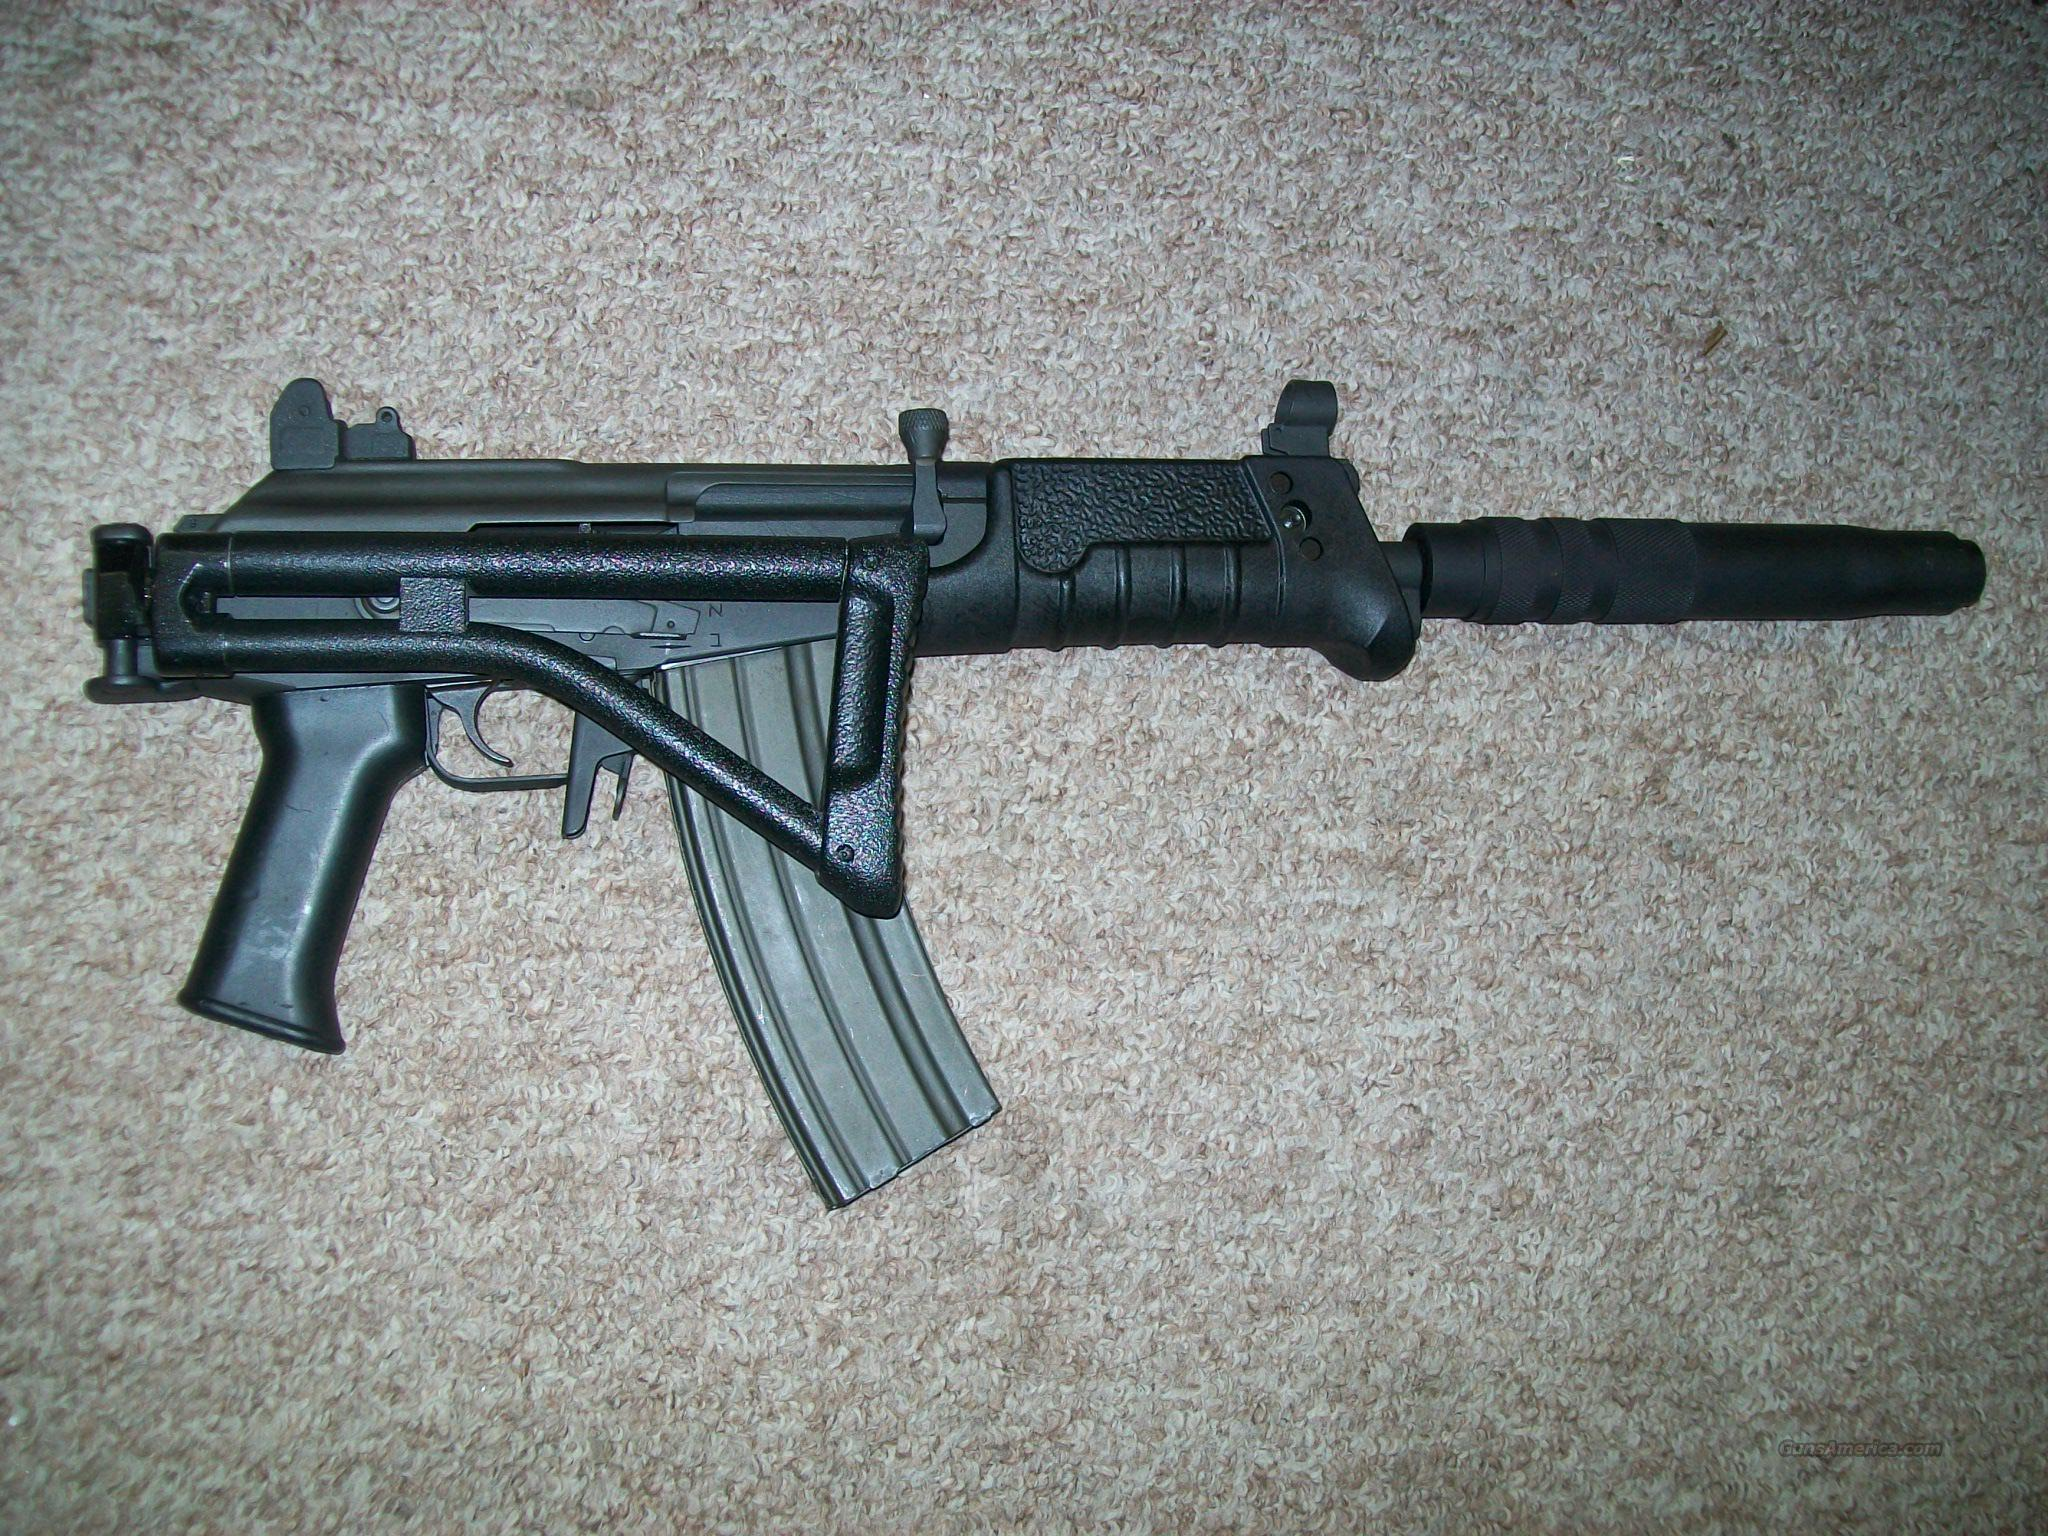 micro galil  Guns > Rifles > Galil Rifles